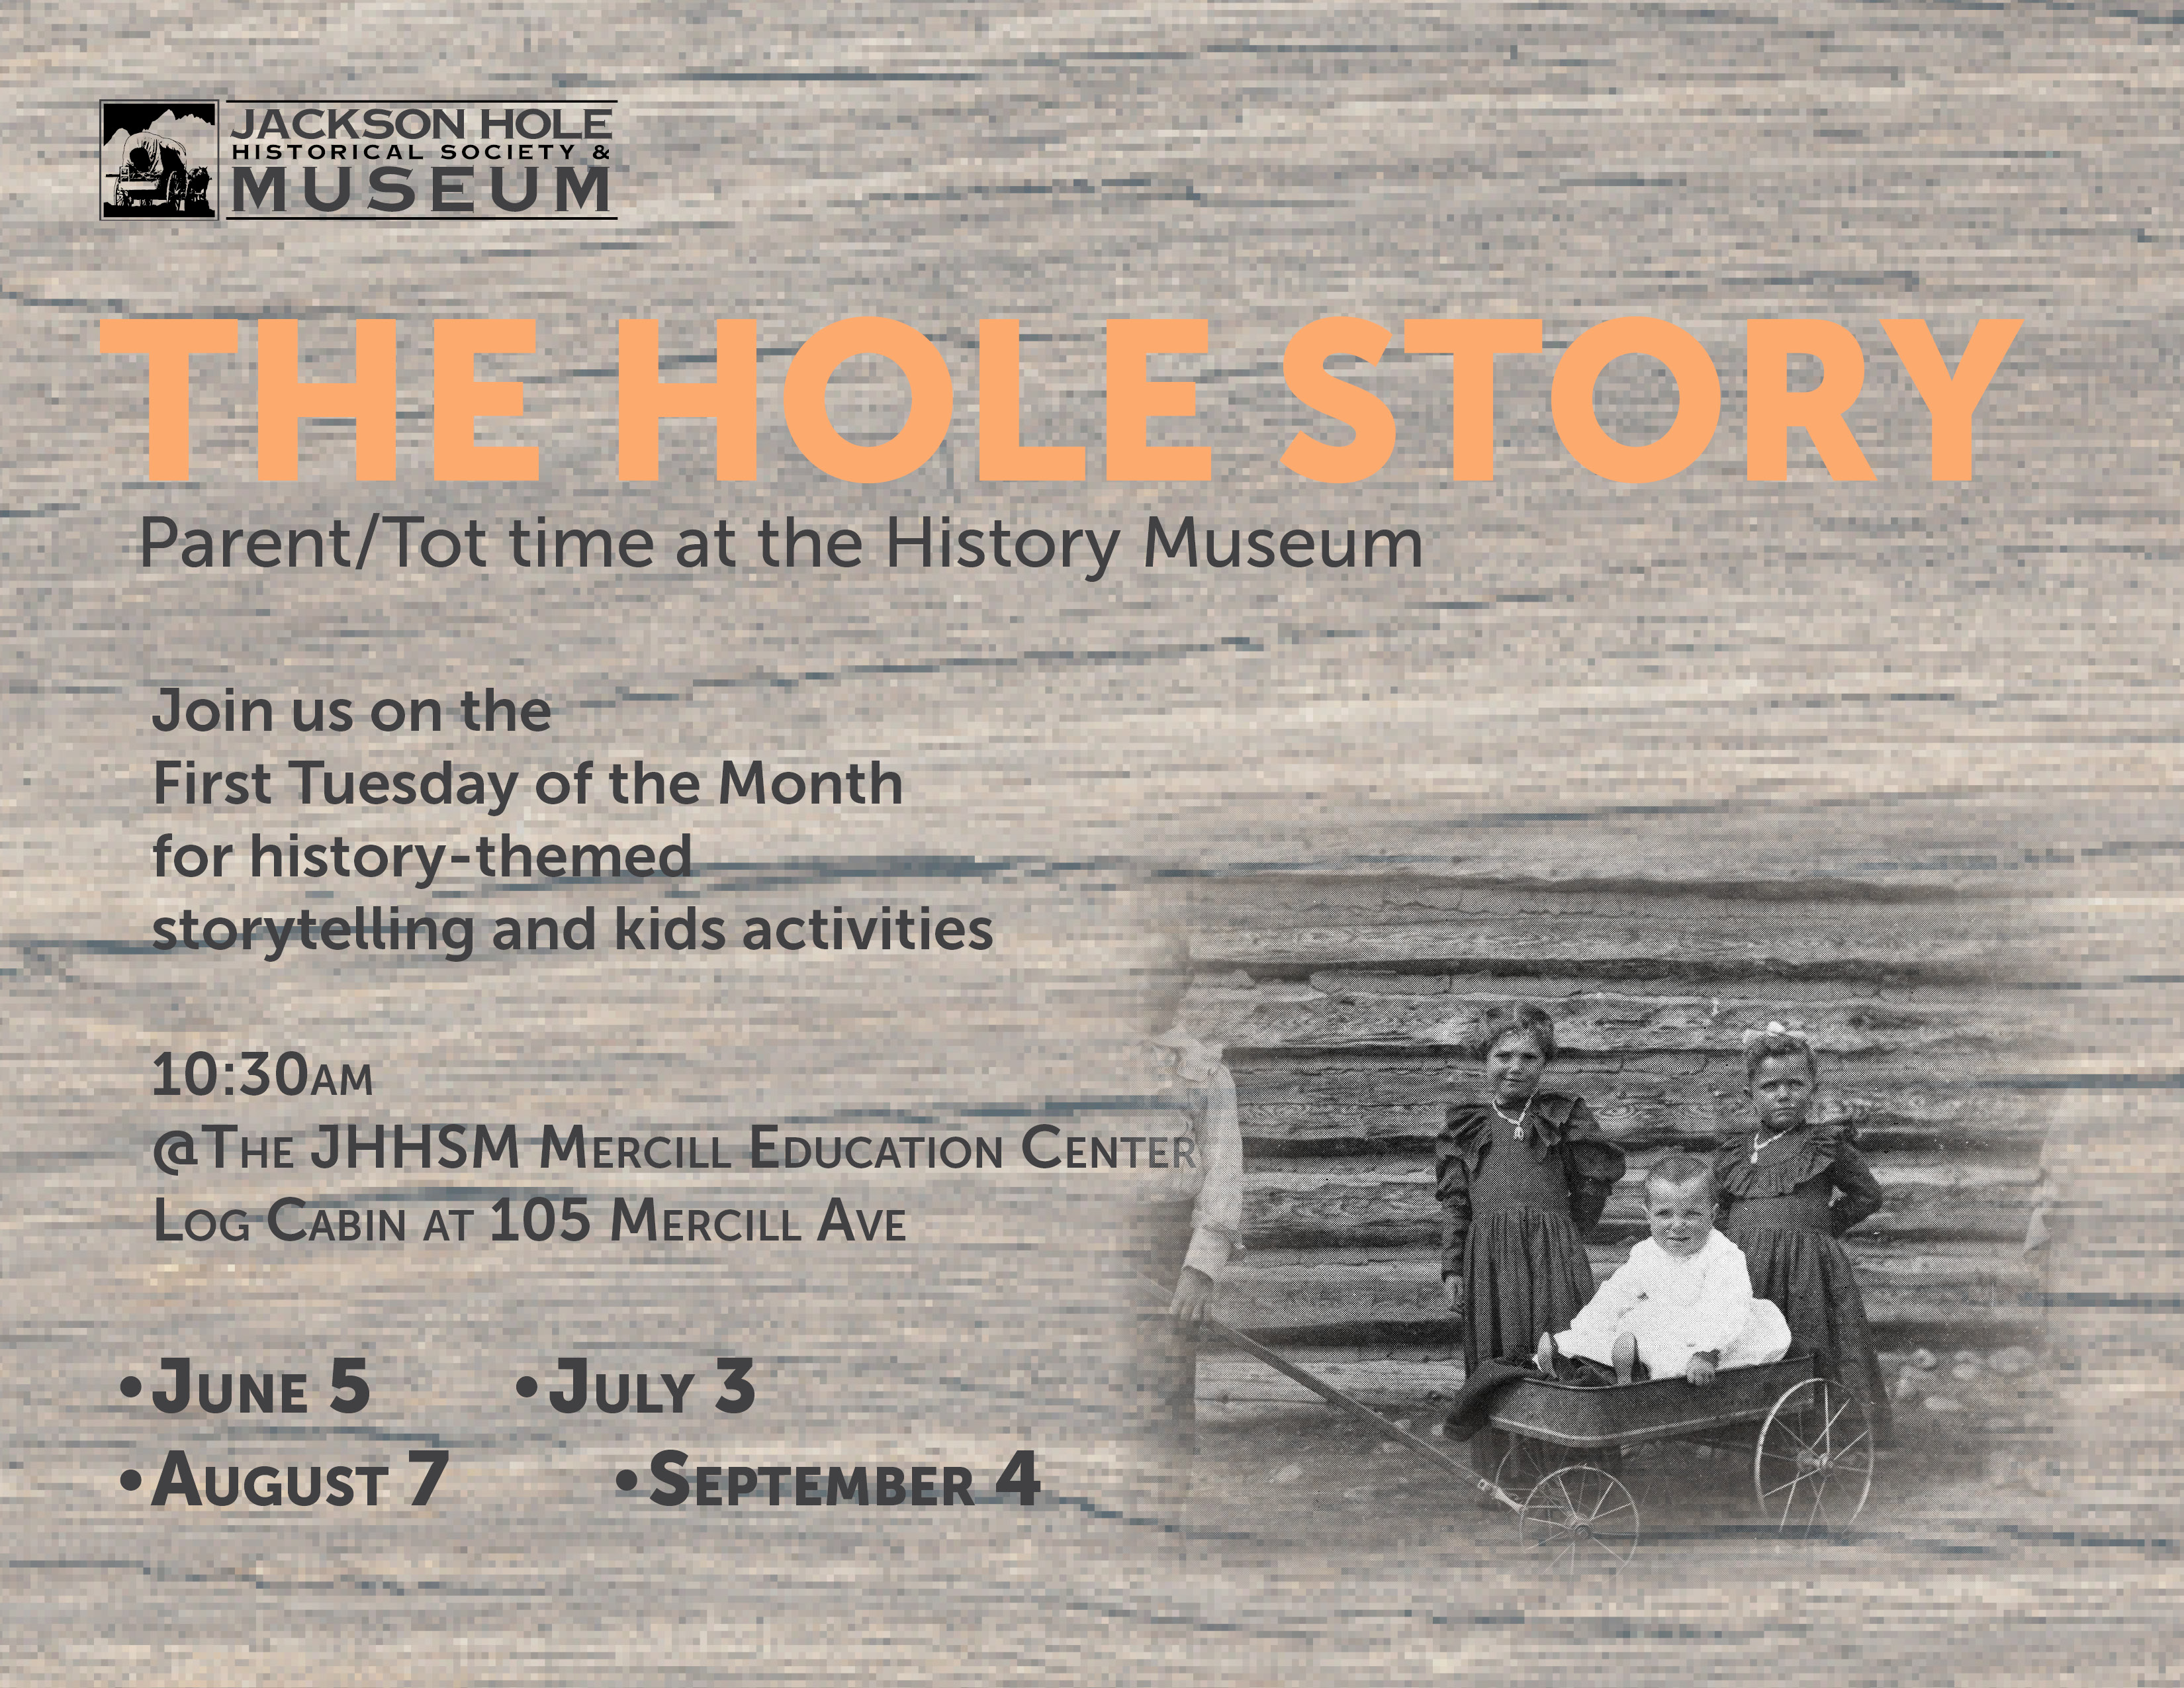 welcome to jackson hole historical society and museum